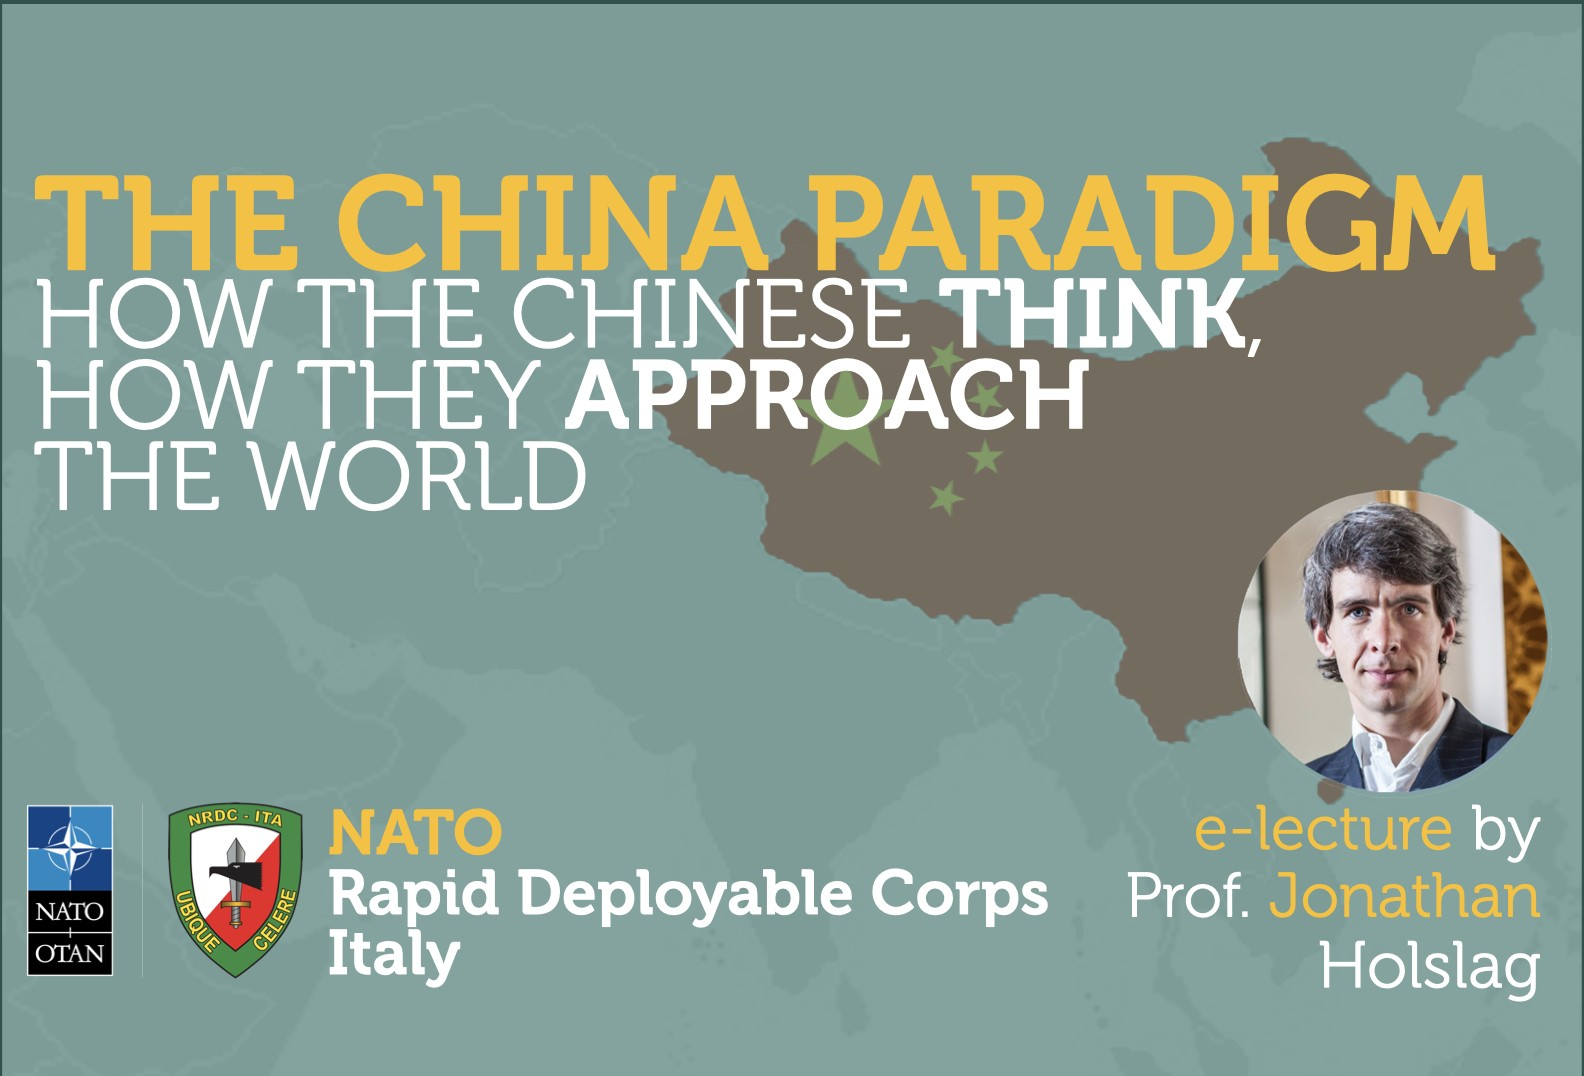 NRDC-ITA considers China's global approach after COVID-19: European influence and global aspirations.